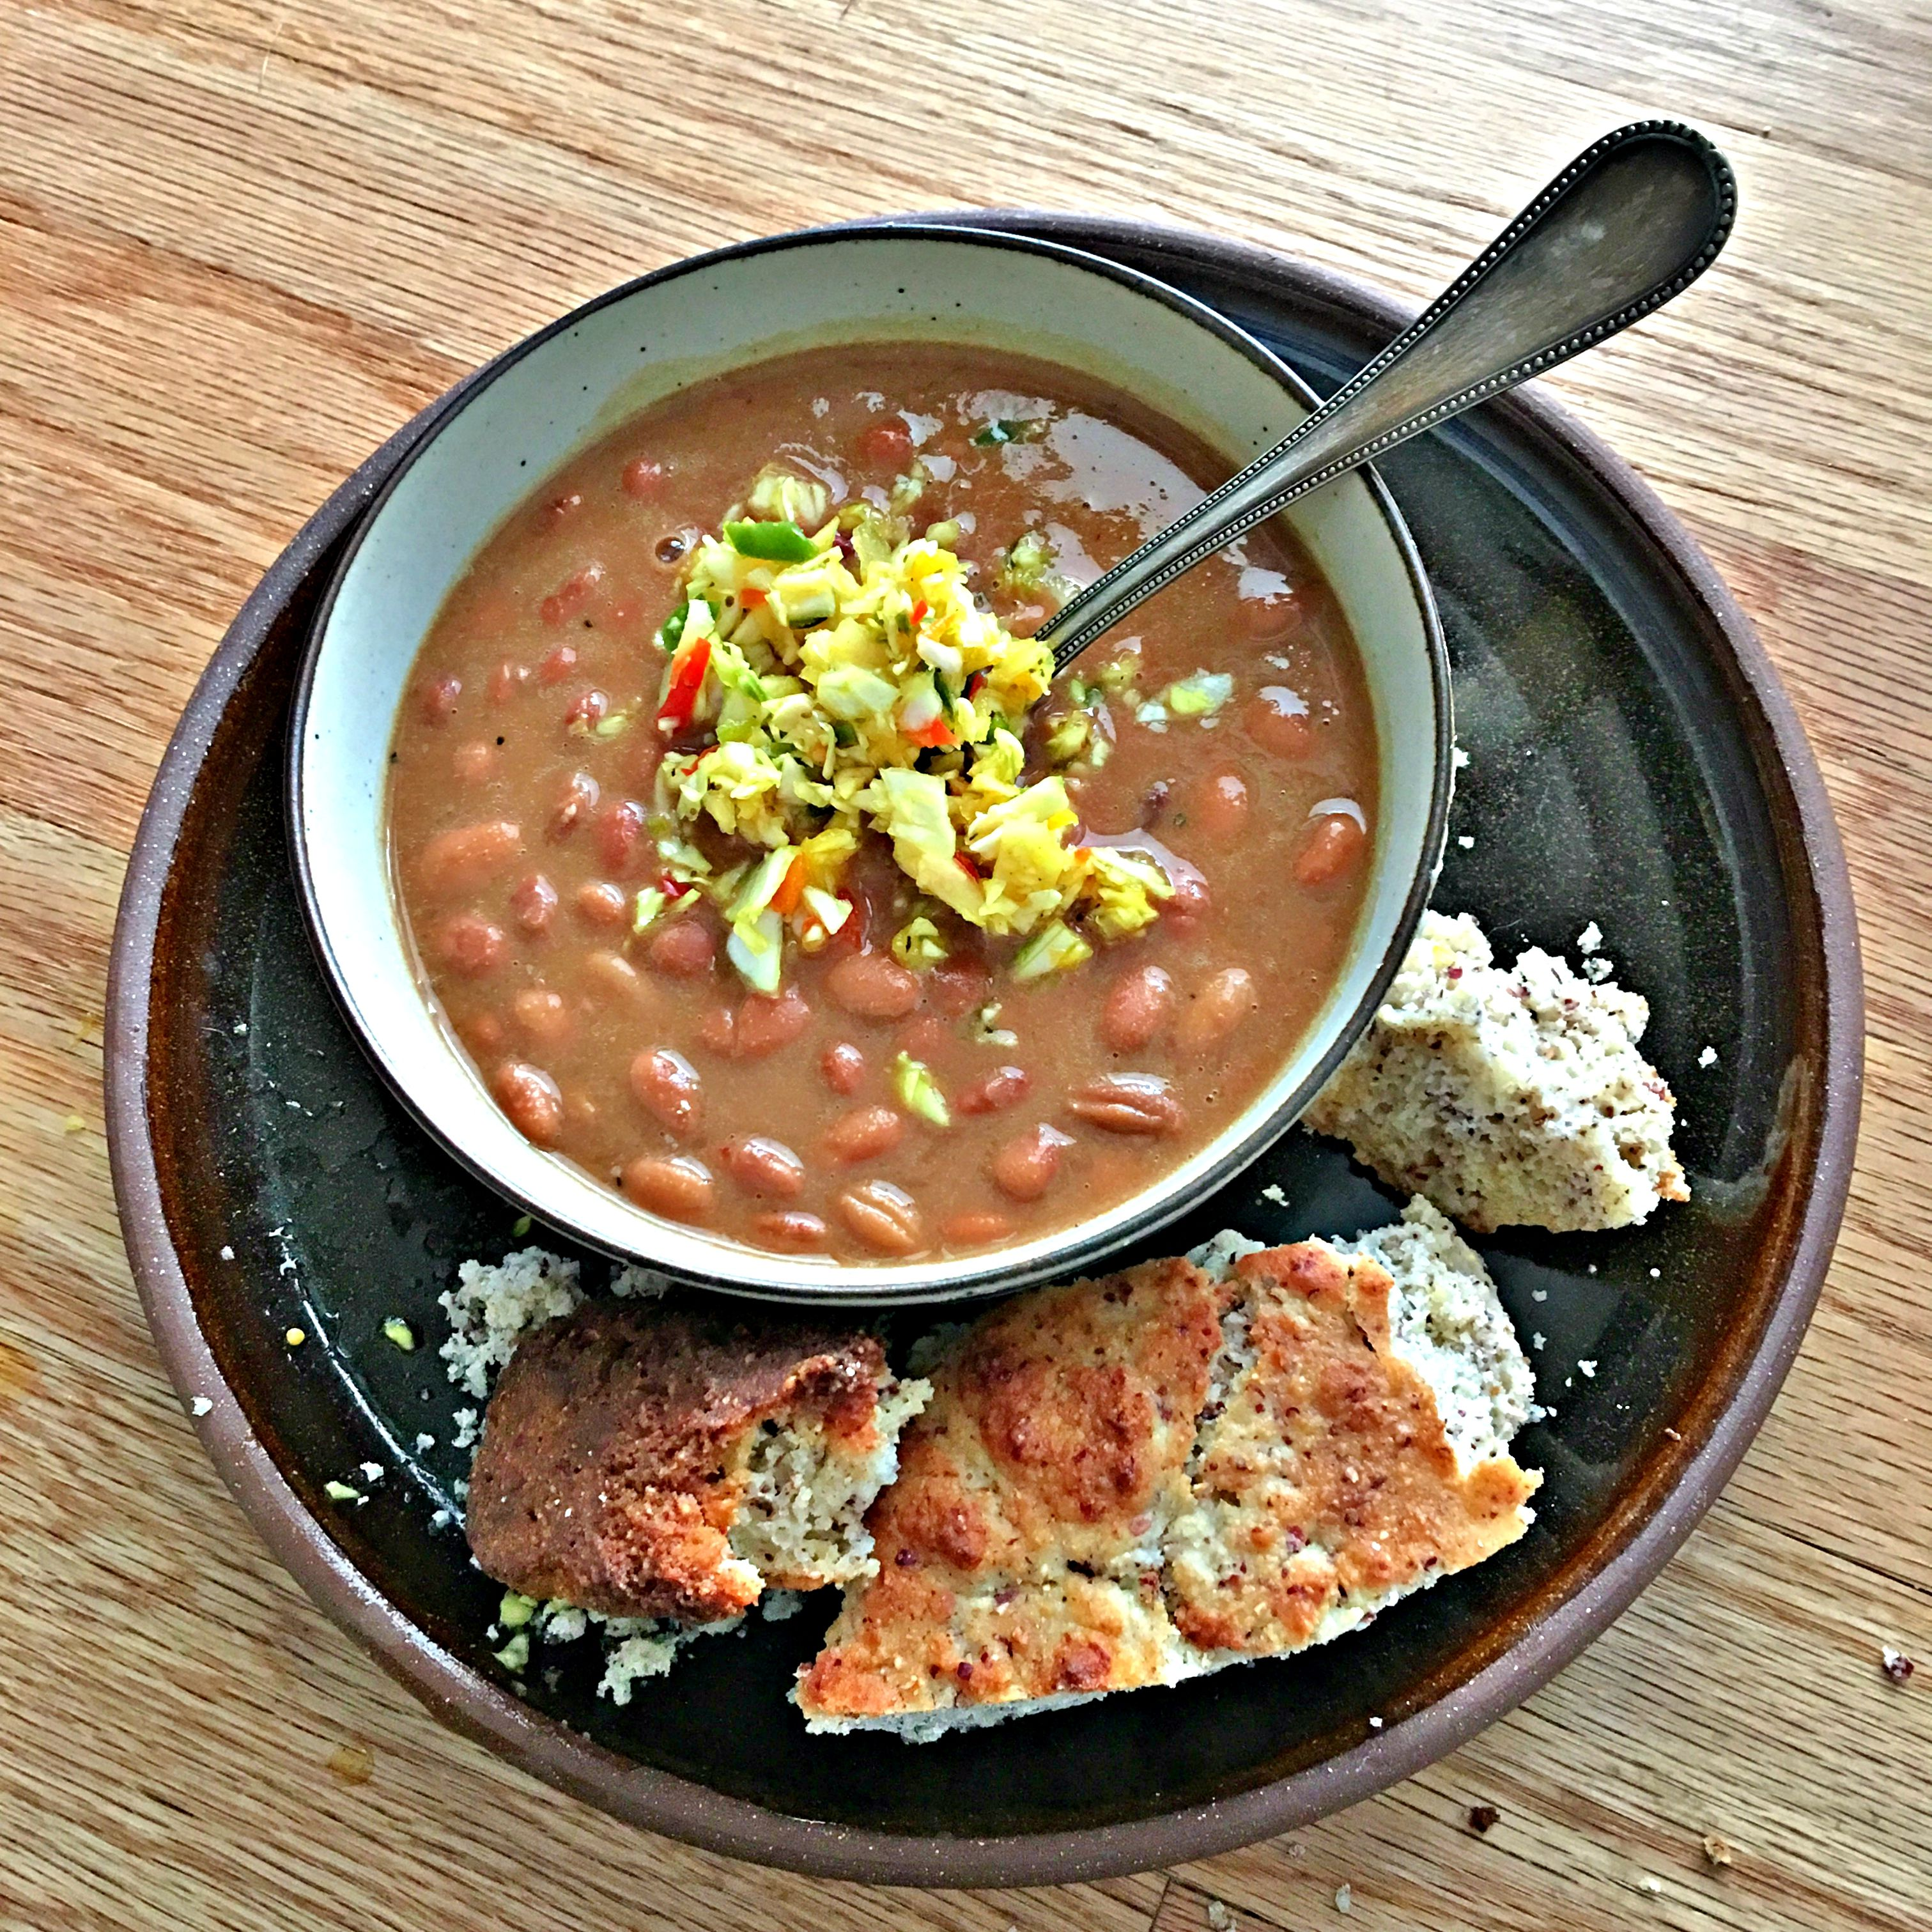 Iconic Southern Plates: Appalachia's Soup Beans, Cornbread, and Chow Chow